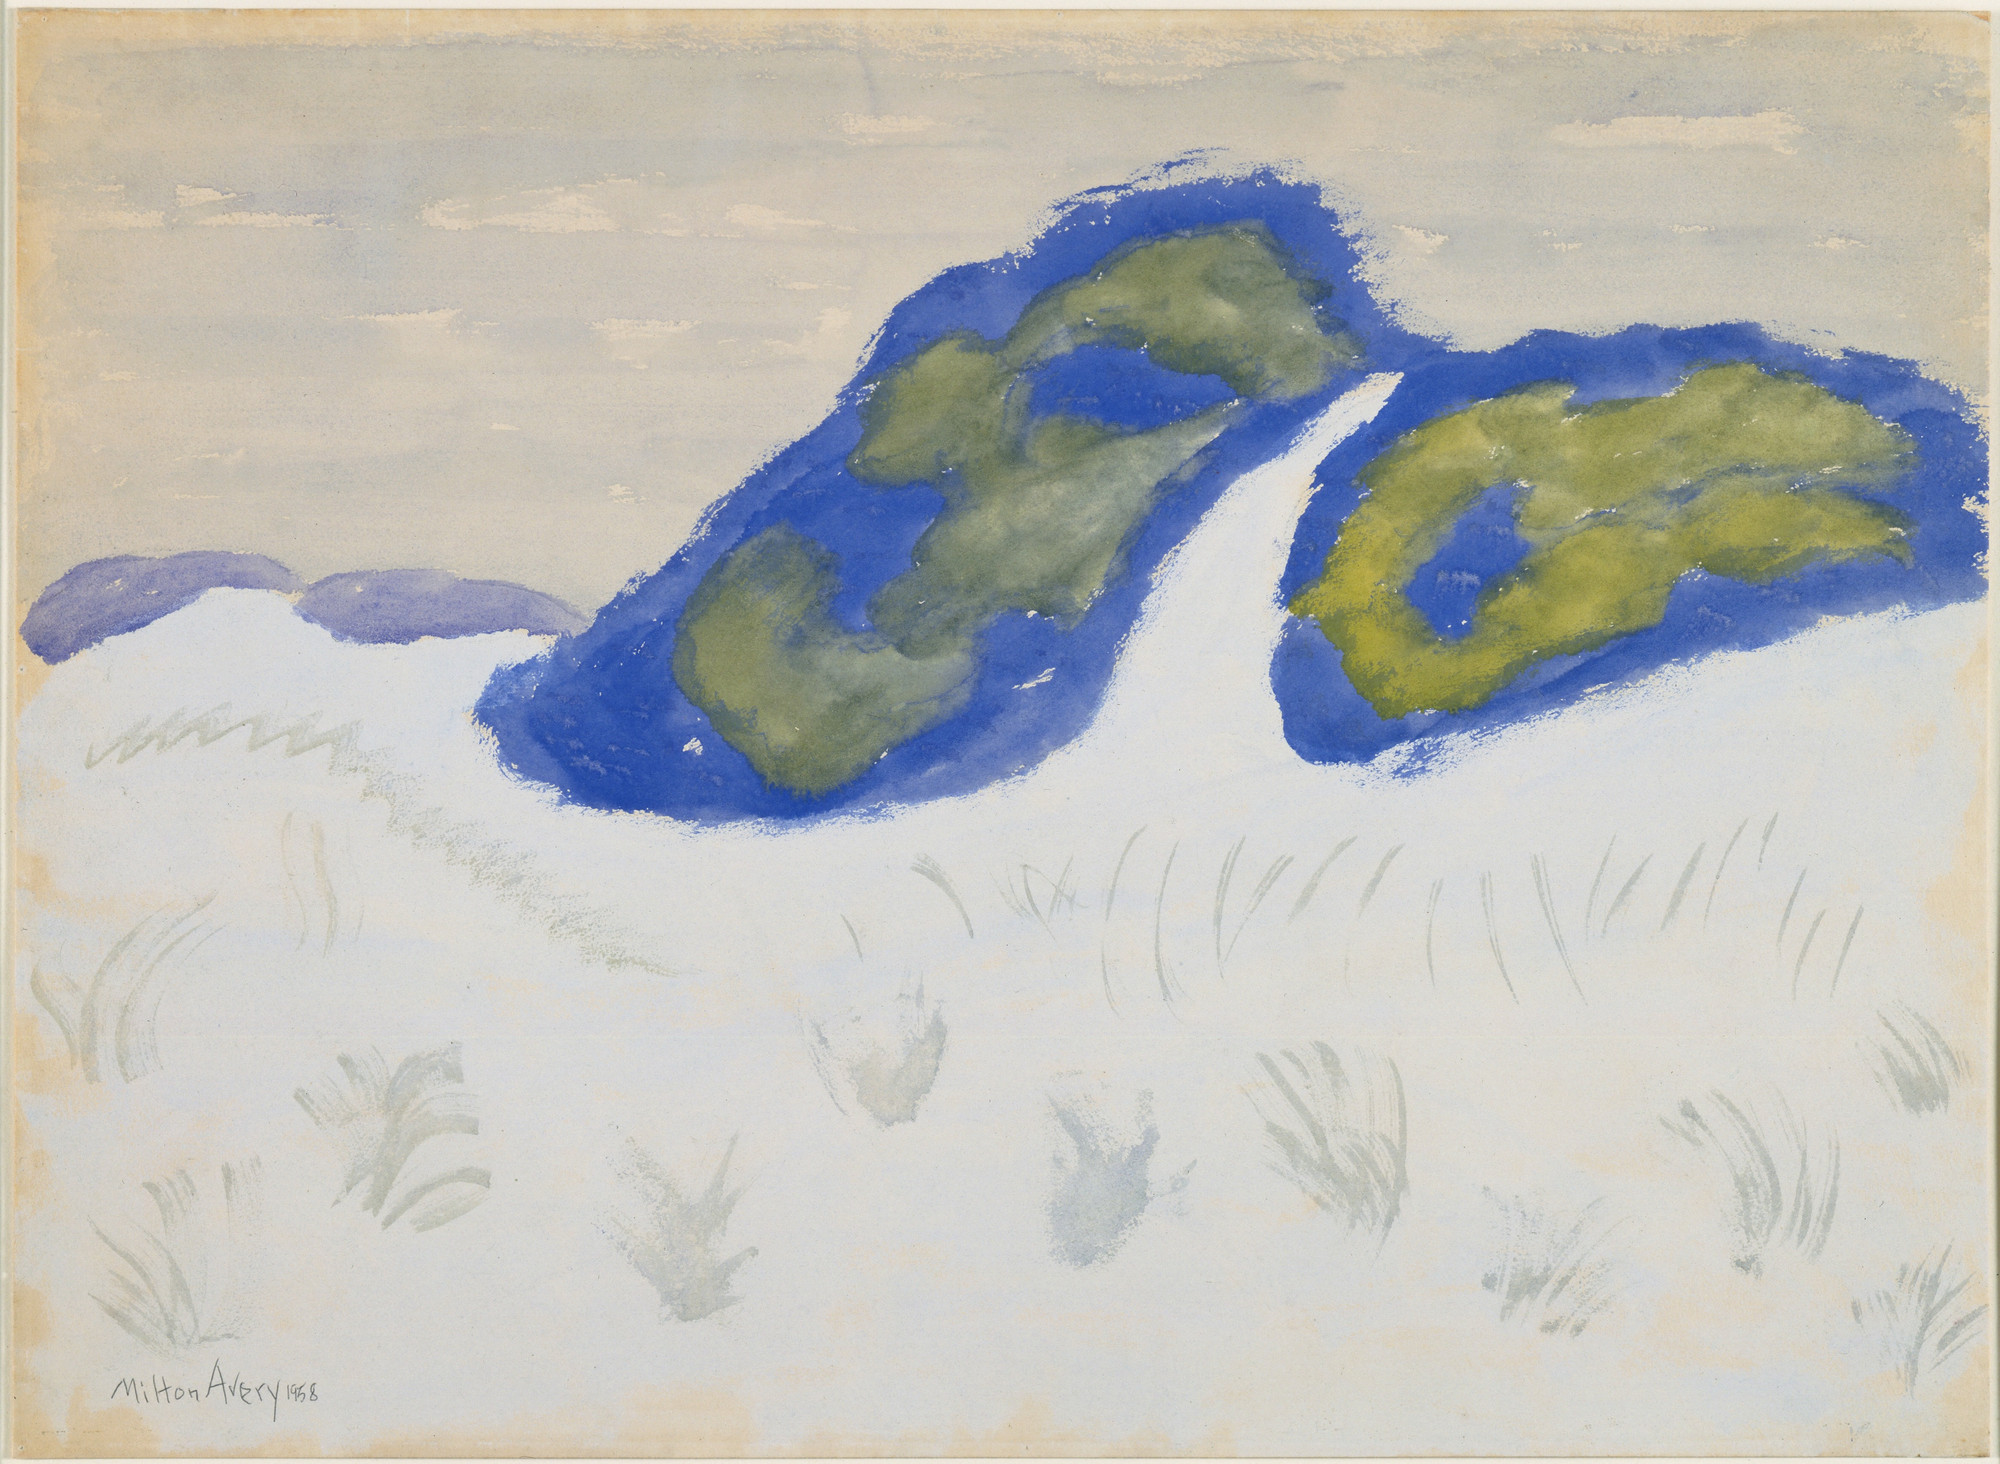 Milton Avery. Dune and Bushes. 1958